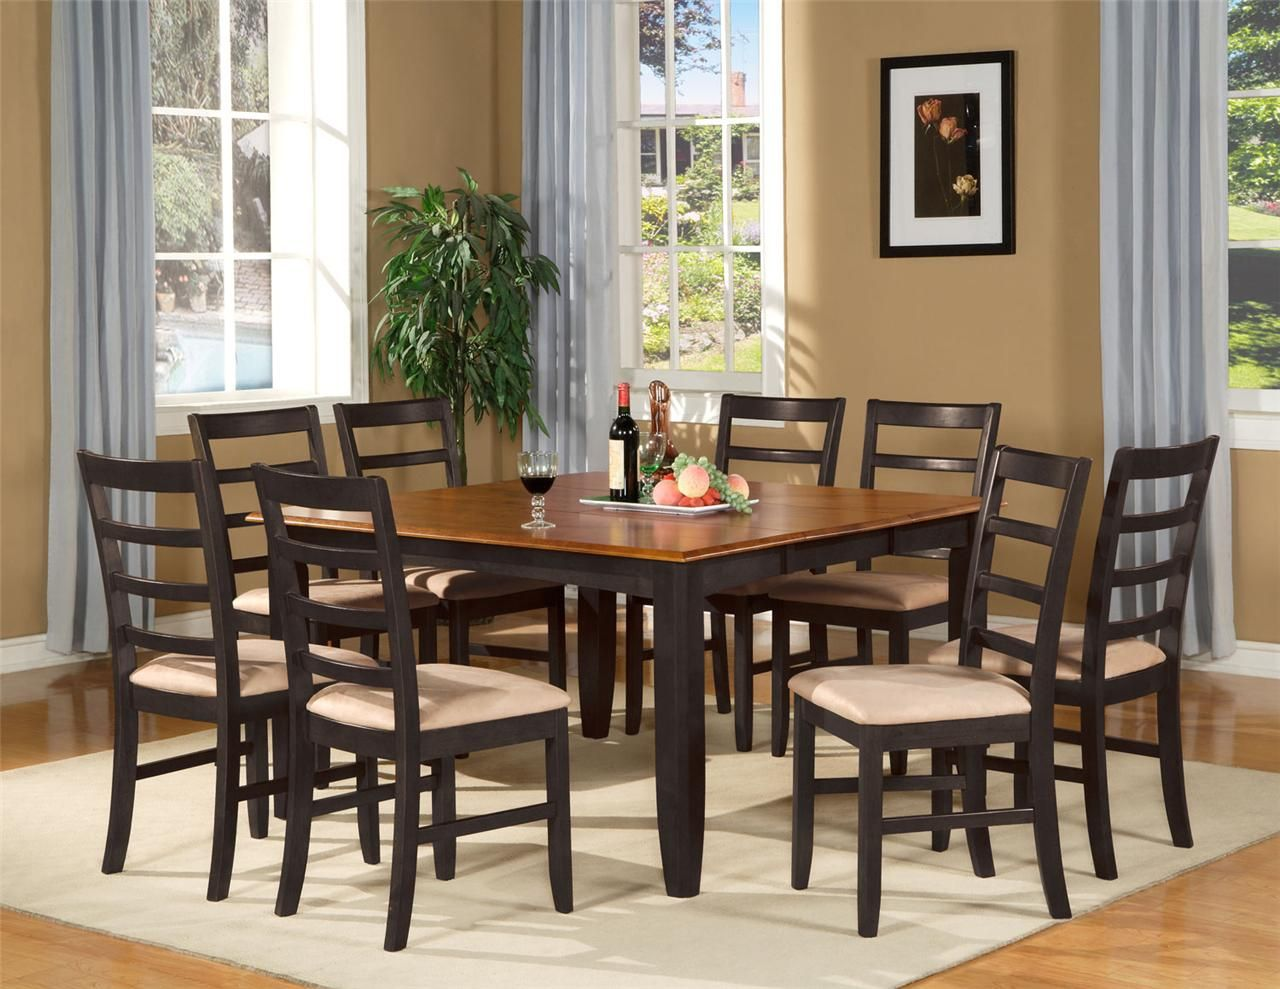 Dining Table 8 Chairs 9 Pc Square Dinette Dining Room Table Set And 8 Chairs Dining